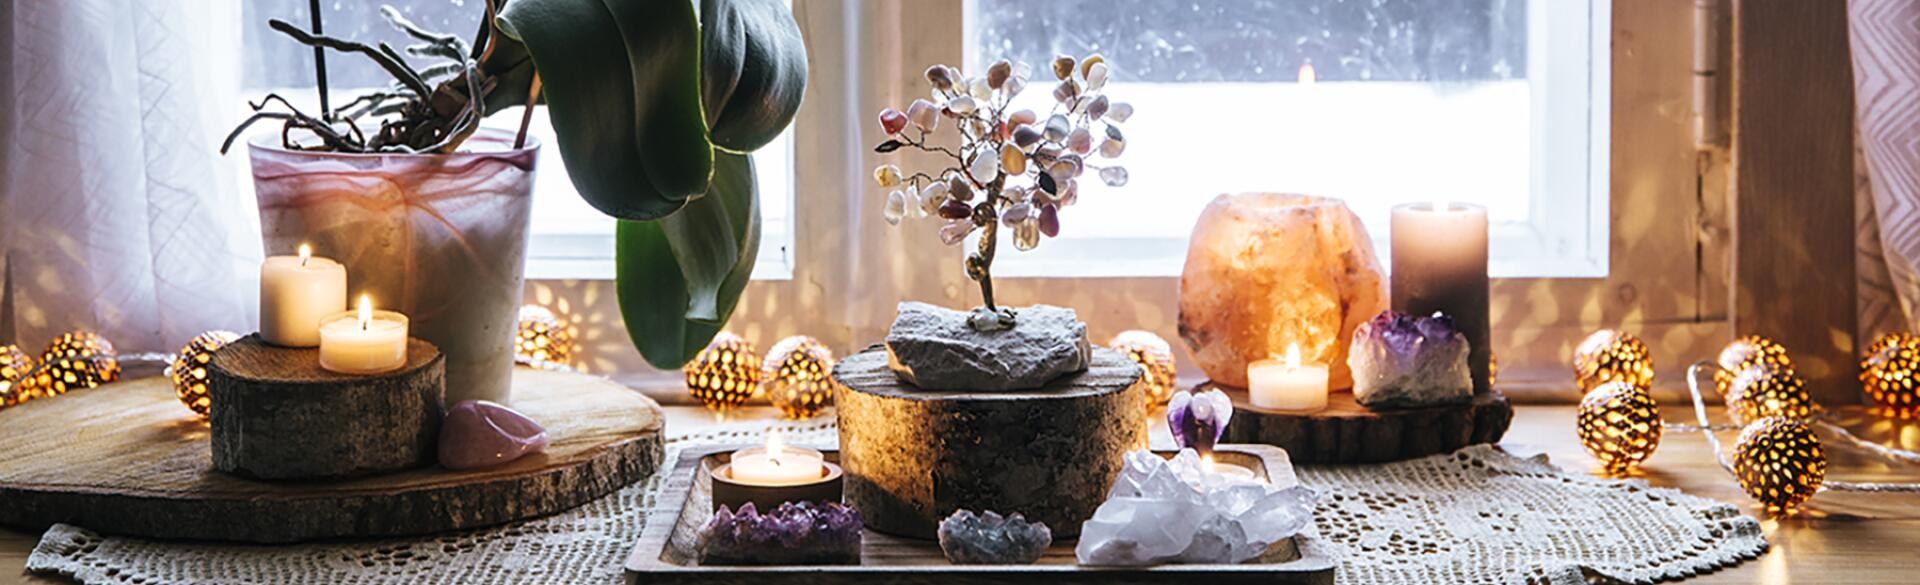 image_of_plant_candles_crystals_on_window_sill_GettyImages-1153716253_1800